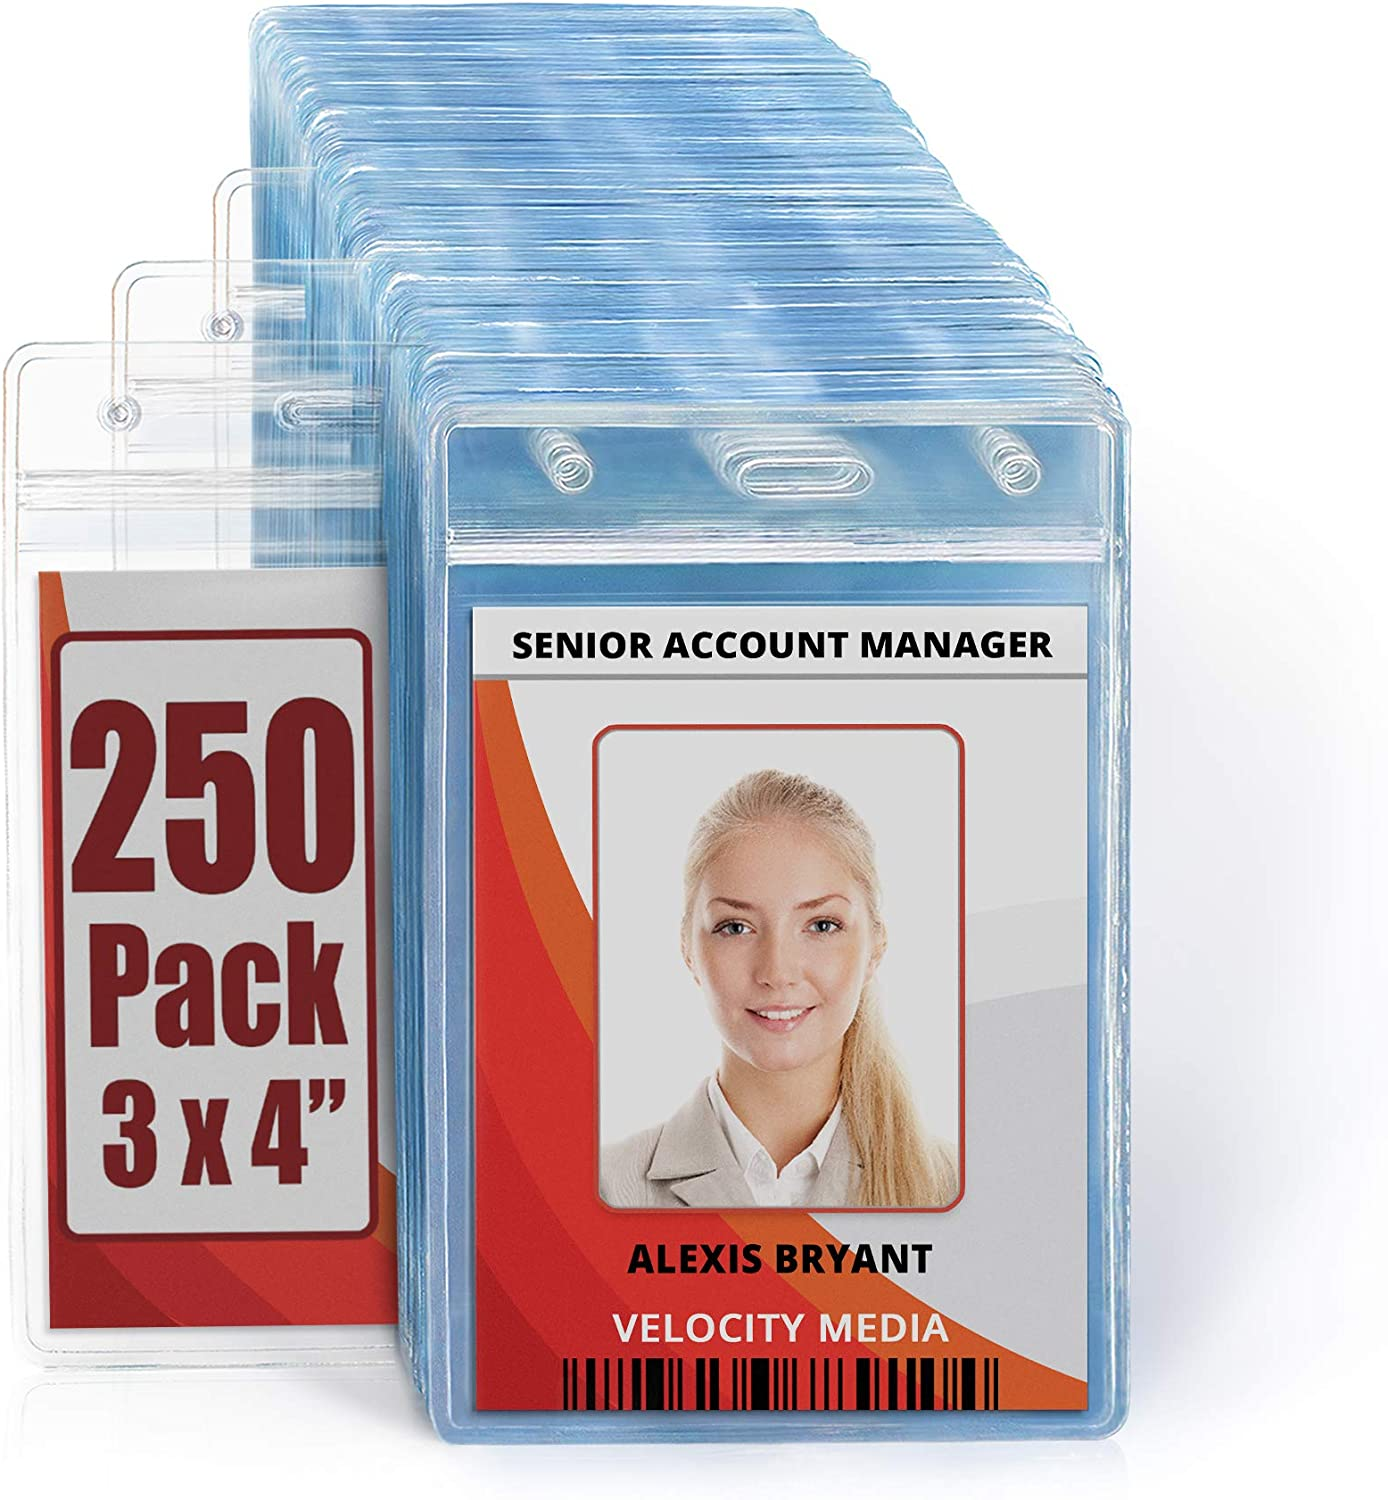 MIFFLIN Large L Vertical ID Badge 25 inch Holders Clear Free shipping on posting reviews 3x4 Miami Mall